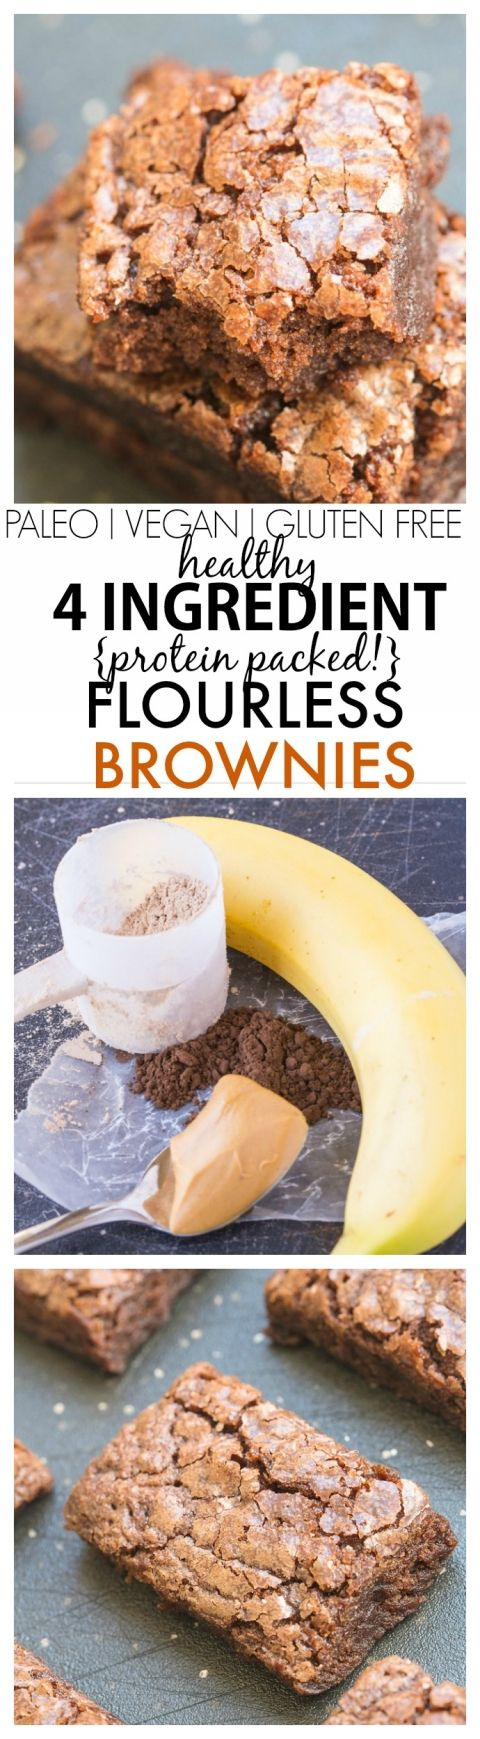 Four ingredient Flourless Protein Packed Brownies recipe- No butter, oil or flour needed to make these rich, dense, subtly sweet brownies packed with protein- A quick and easy snack which DON'T taste healthy! vegan, gluten free, refined sugar free, paleo option #clean #recipes #healthy #snack #recipe